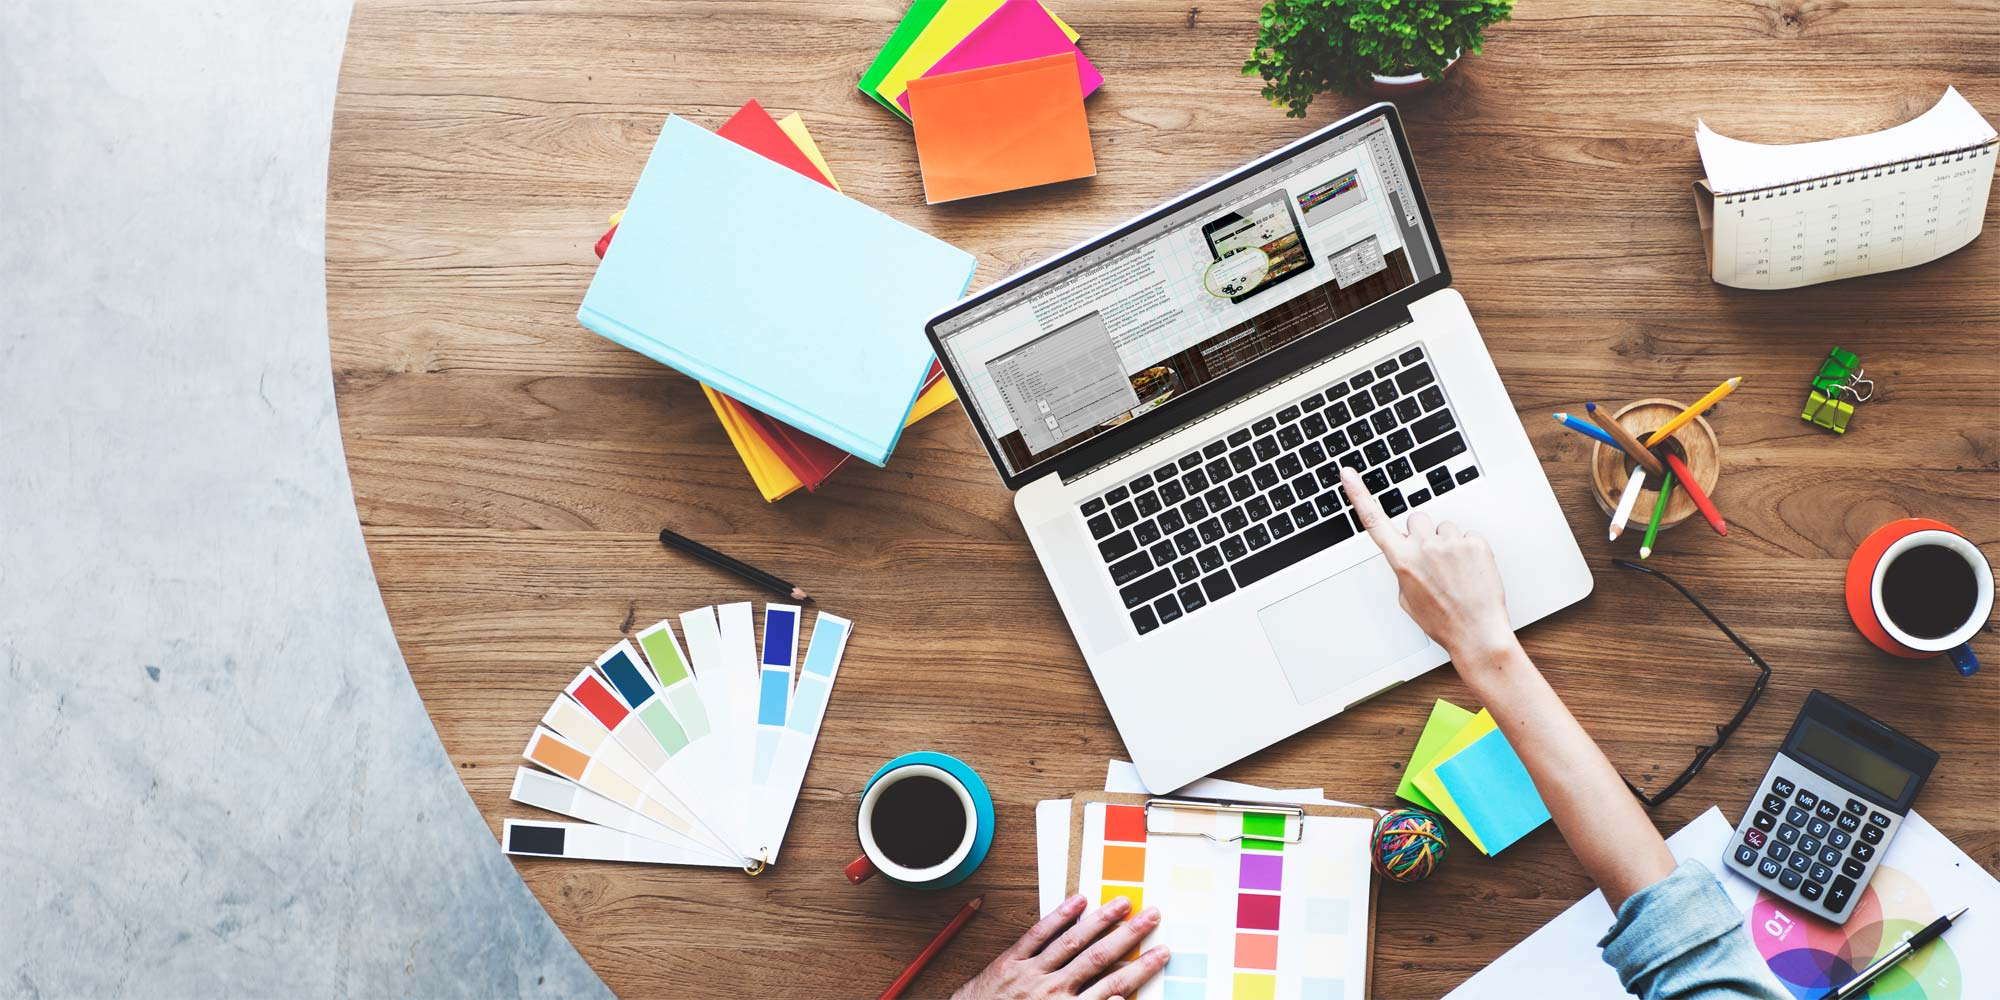 DigitalEffex provides web design in Pensacola, FL and all over the United States